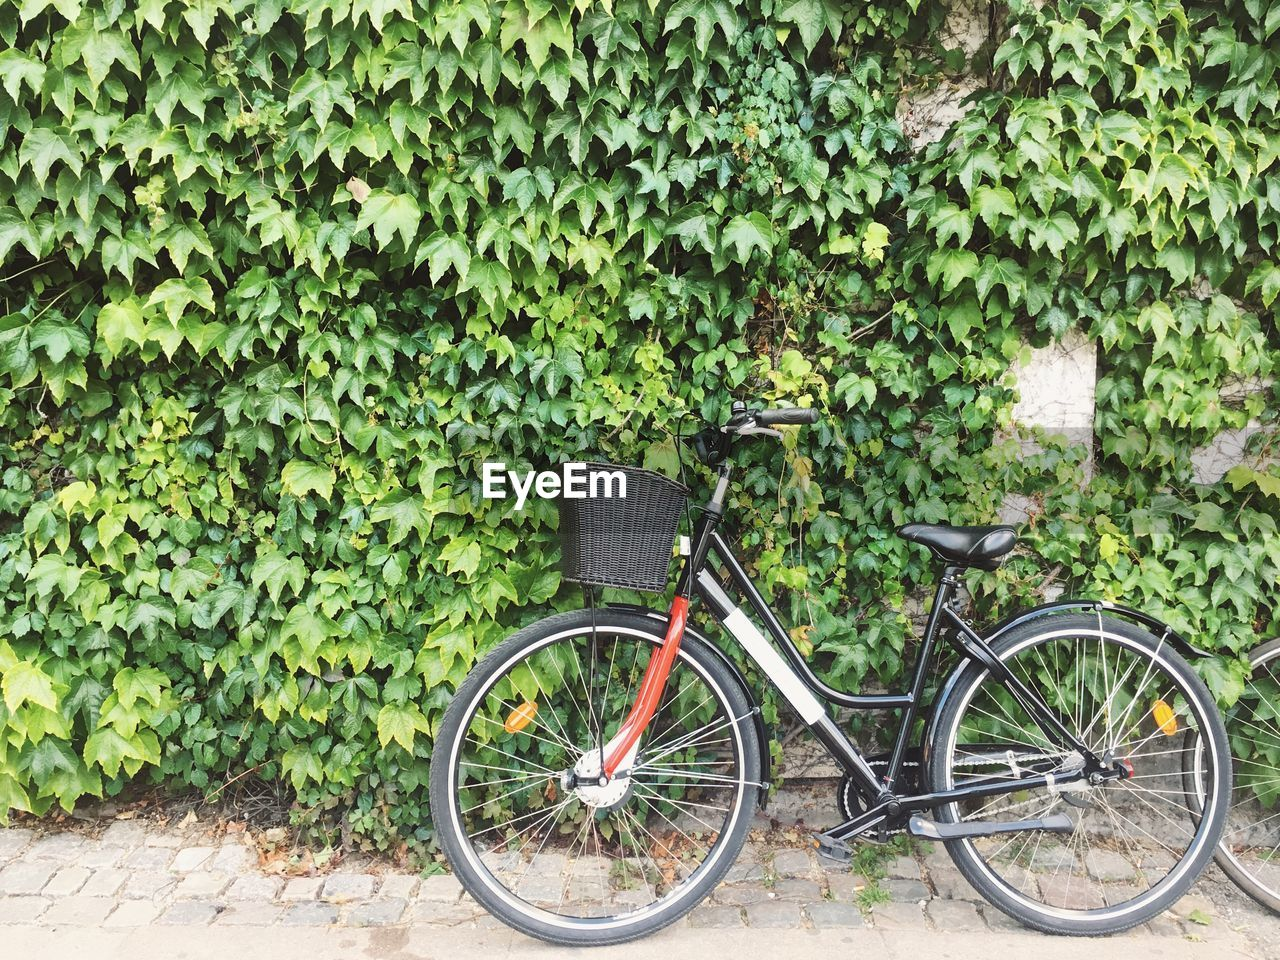 BICYCLE WITH IVY